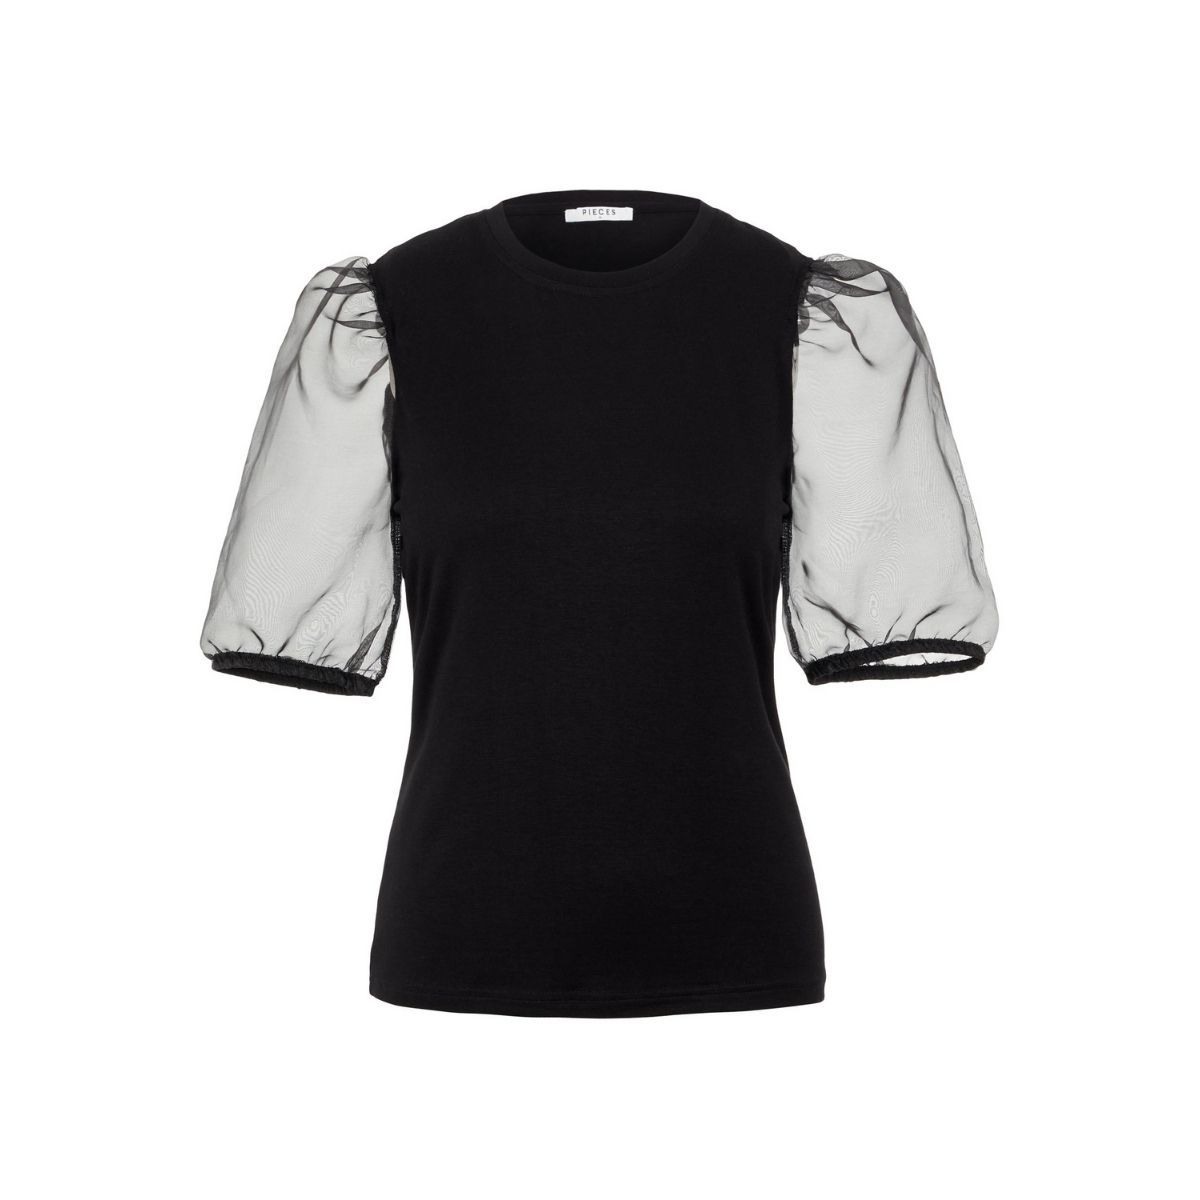 PCMulle SS Top Black